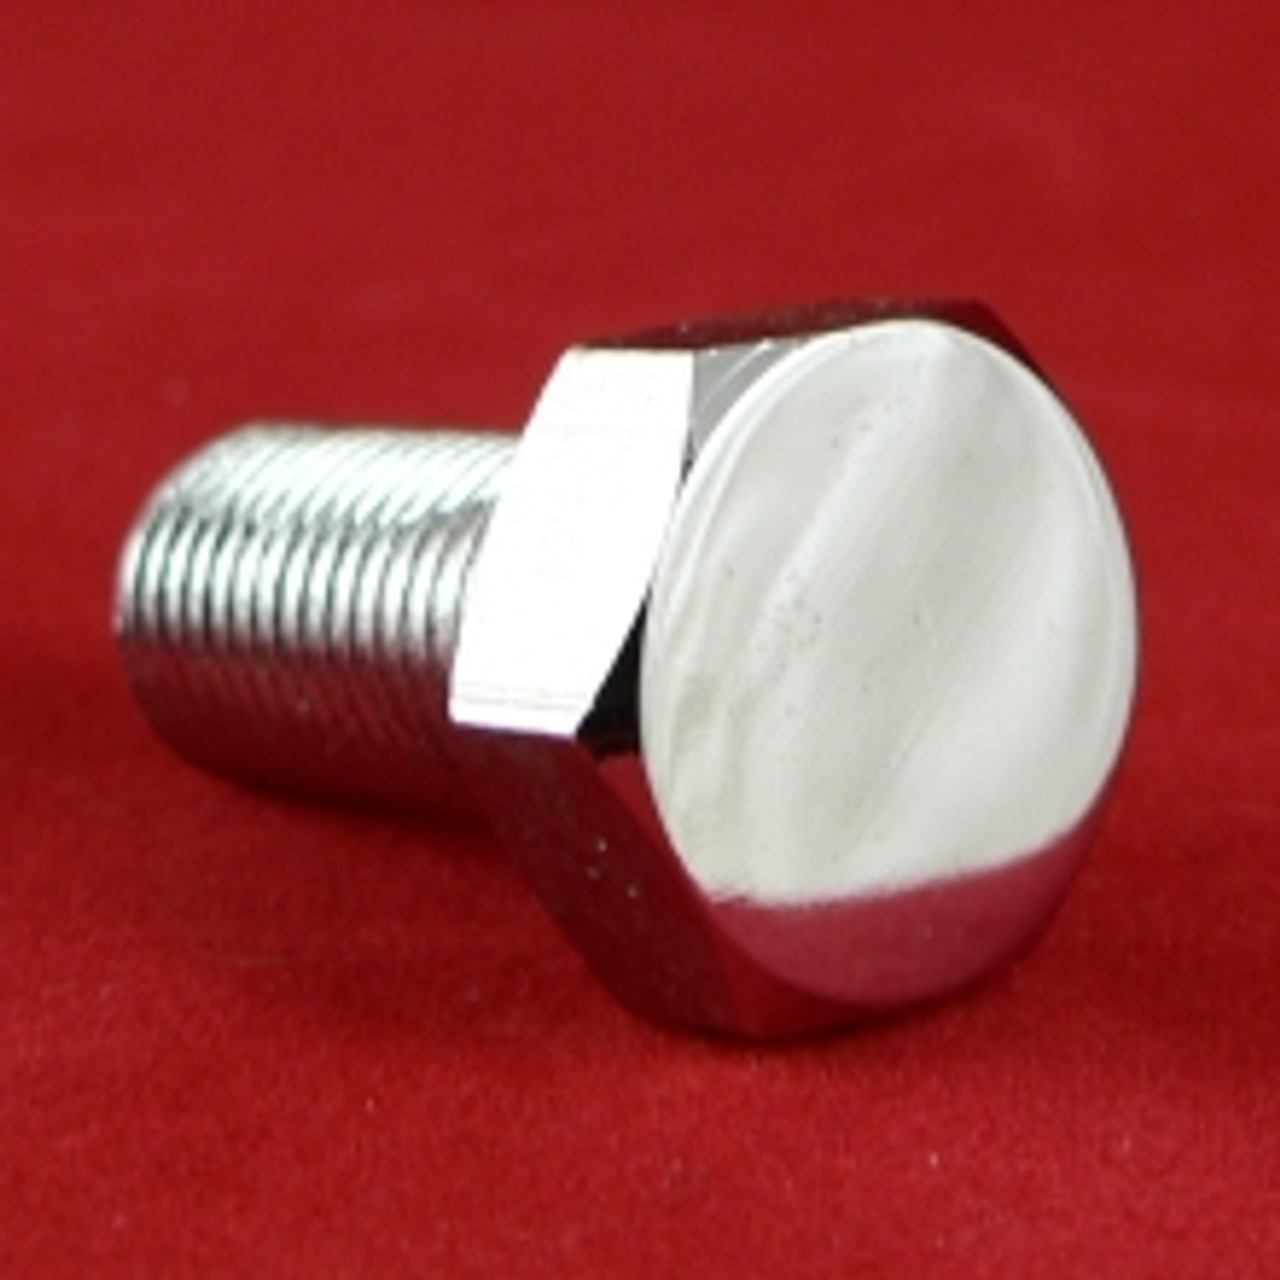 BSCY (CEI) Set screw chrome plated